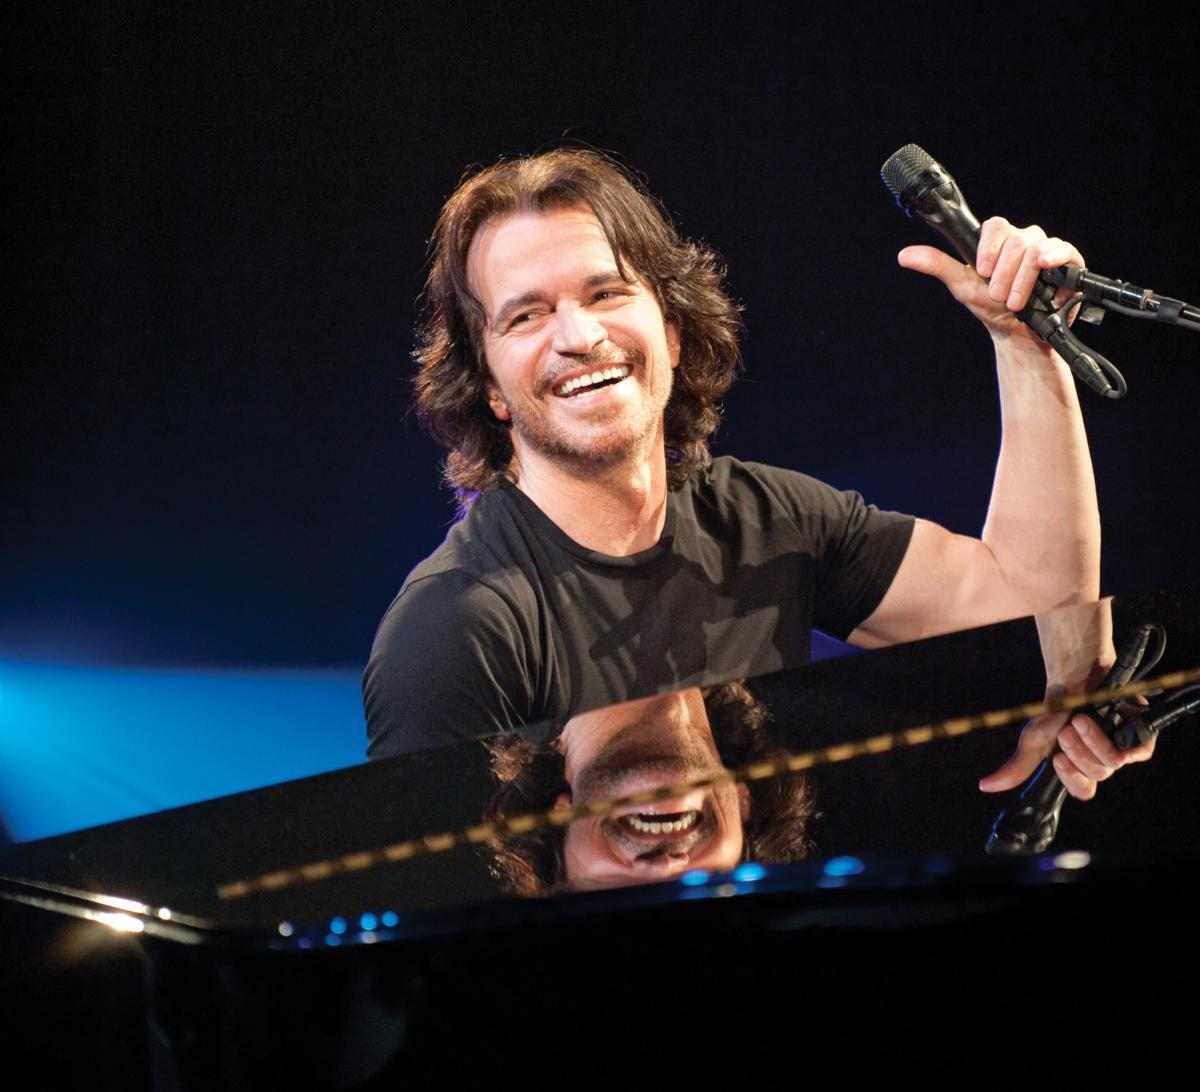 Yanni - photo credit Whit Padgett